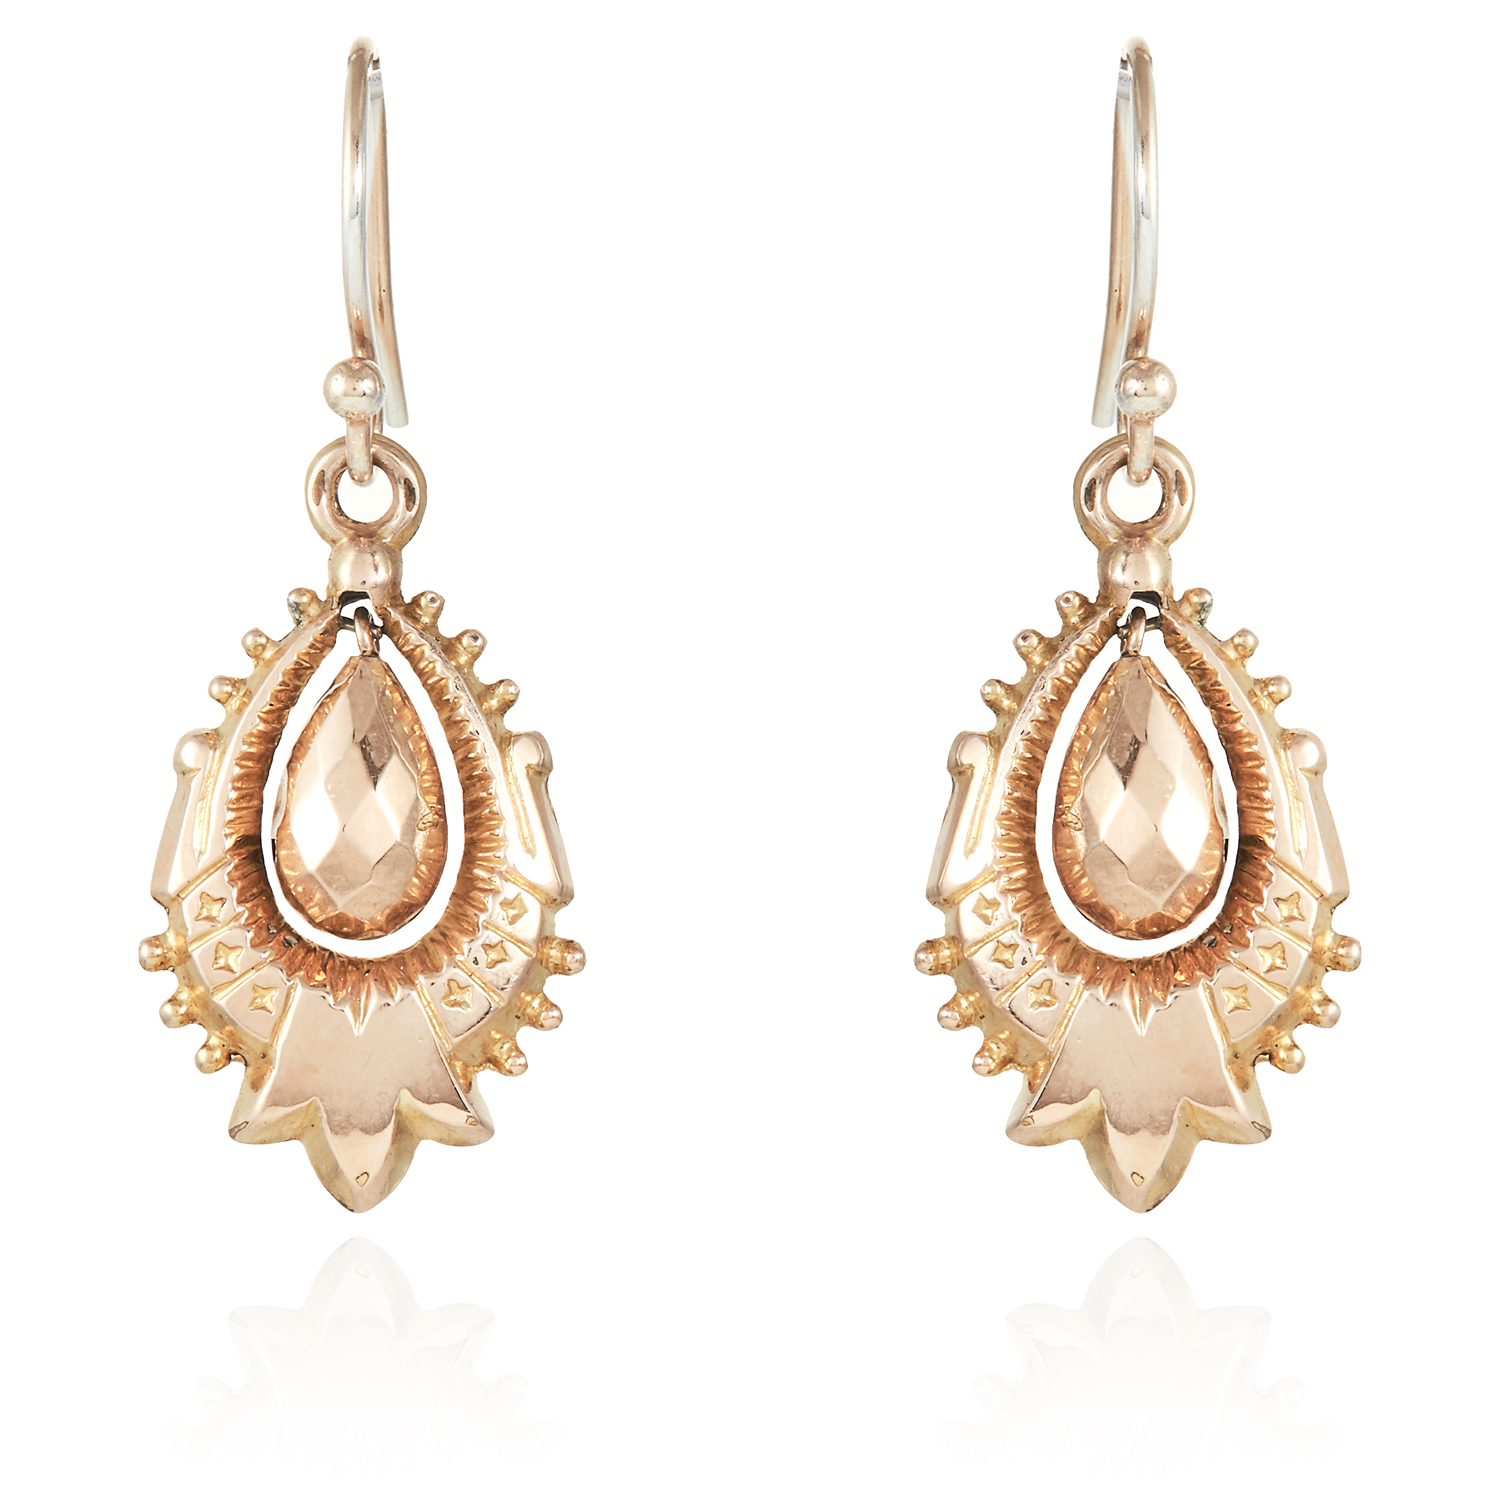 A PAIR OF ANTIQUE ARTICULATED DROP EARRINGS, 19TH CENTURY in yellow gold, unmarked, 3.9cm, 2.4g.